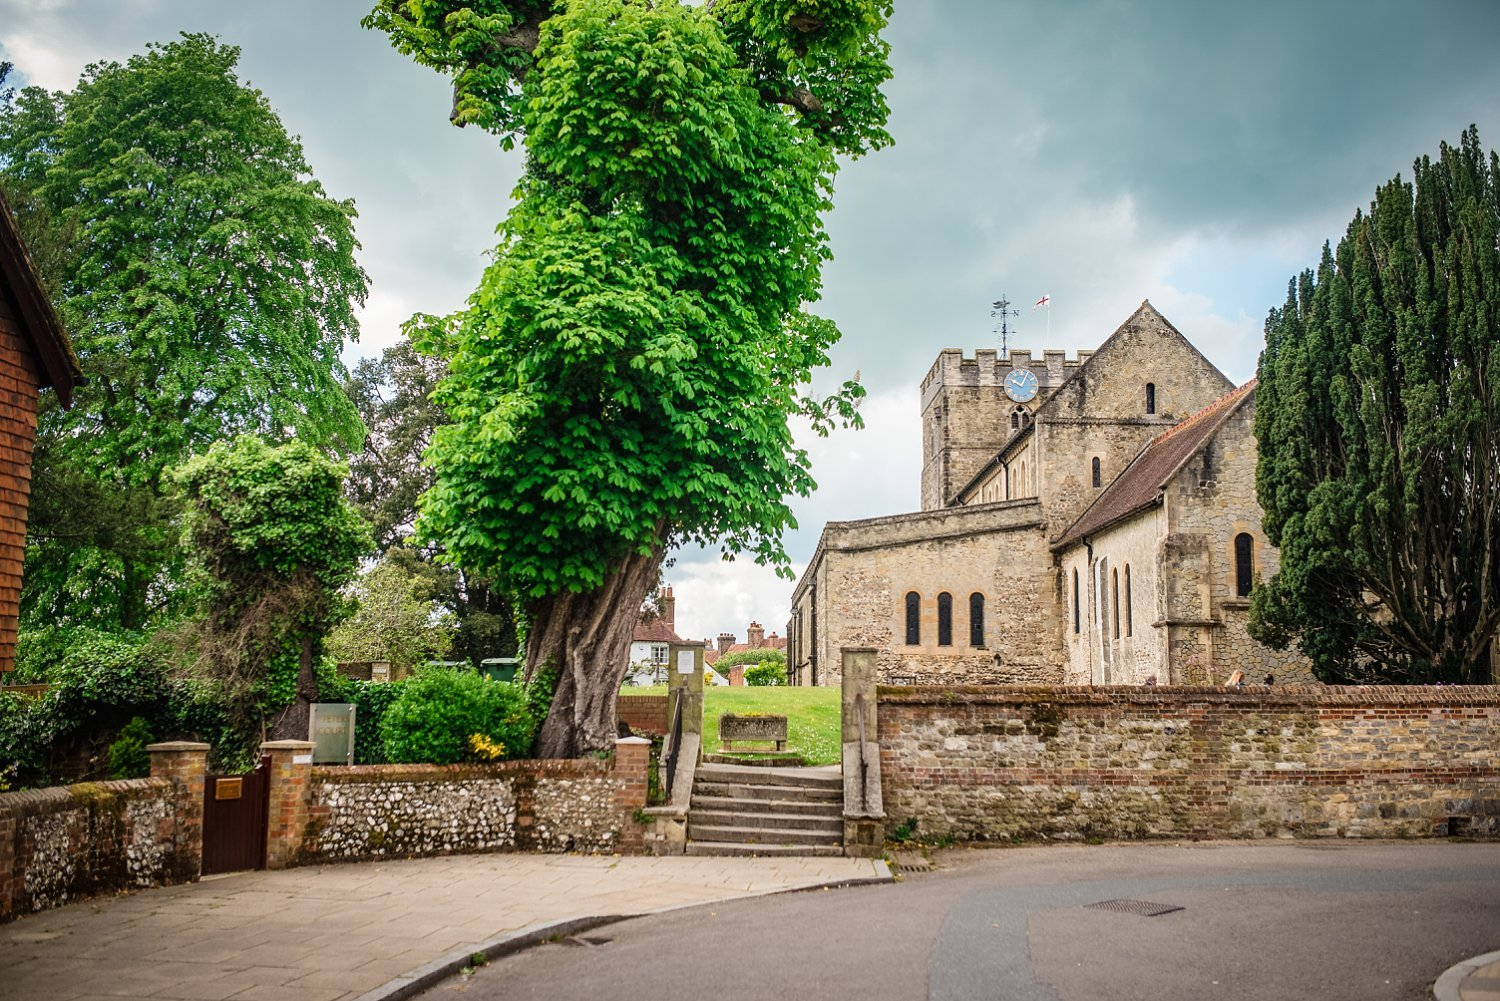 St Peter's Church in Petersfield, wedding ceremony had taken place there - Petersfield Wedding Photography